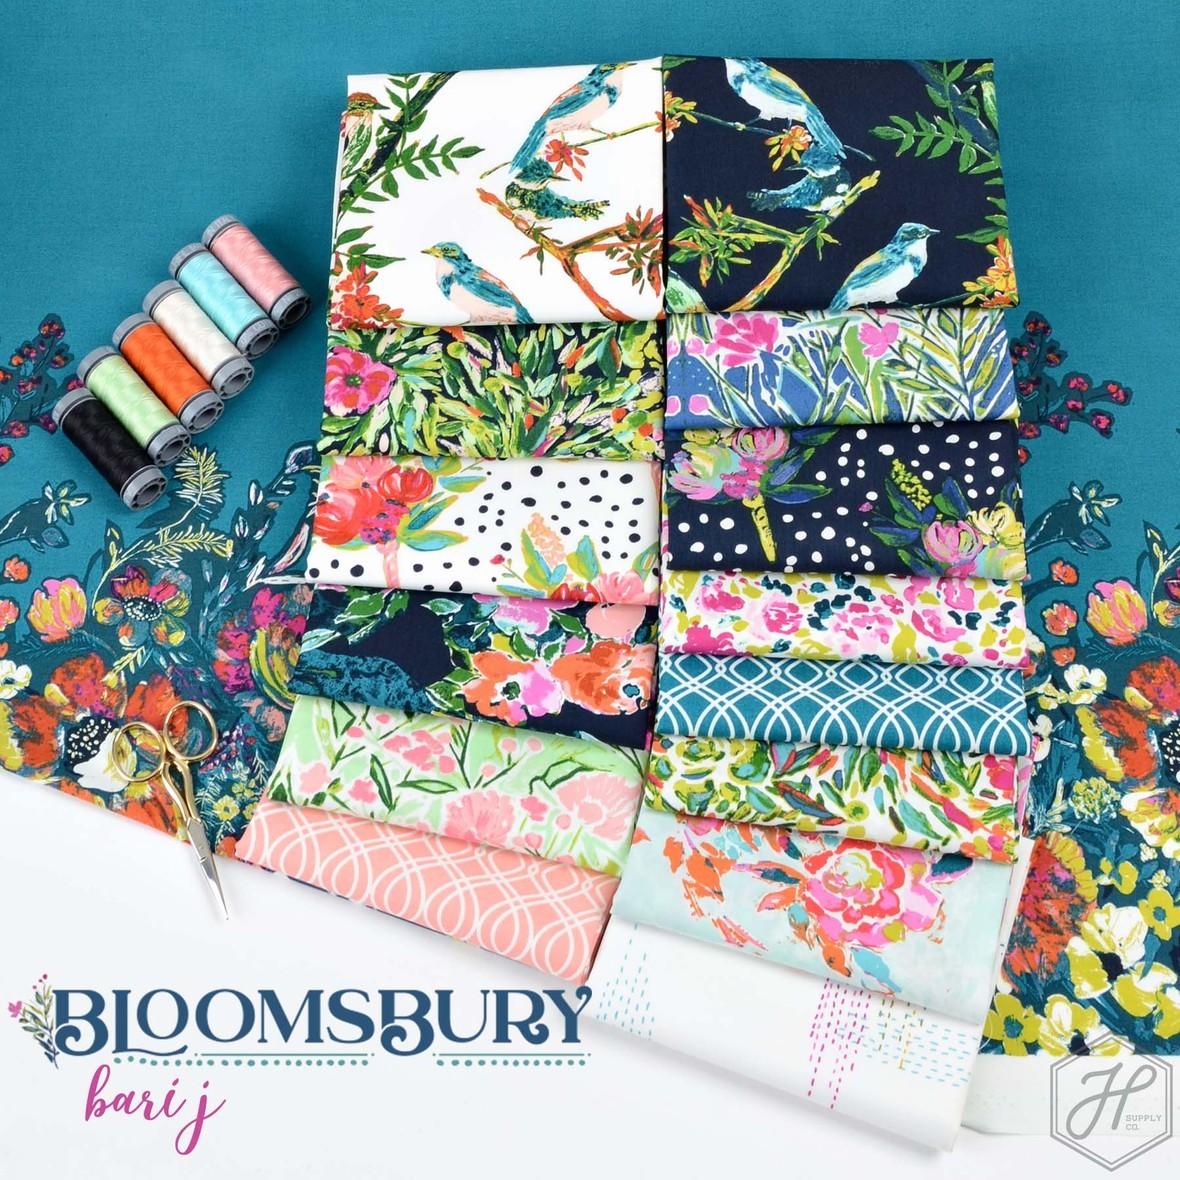 Bloomsbury Fabric Bari J for Art Gallery at Hawthorne Supply Co  1